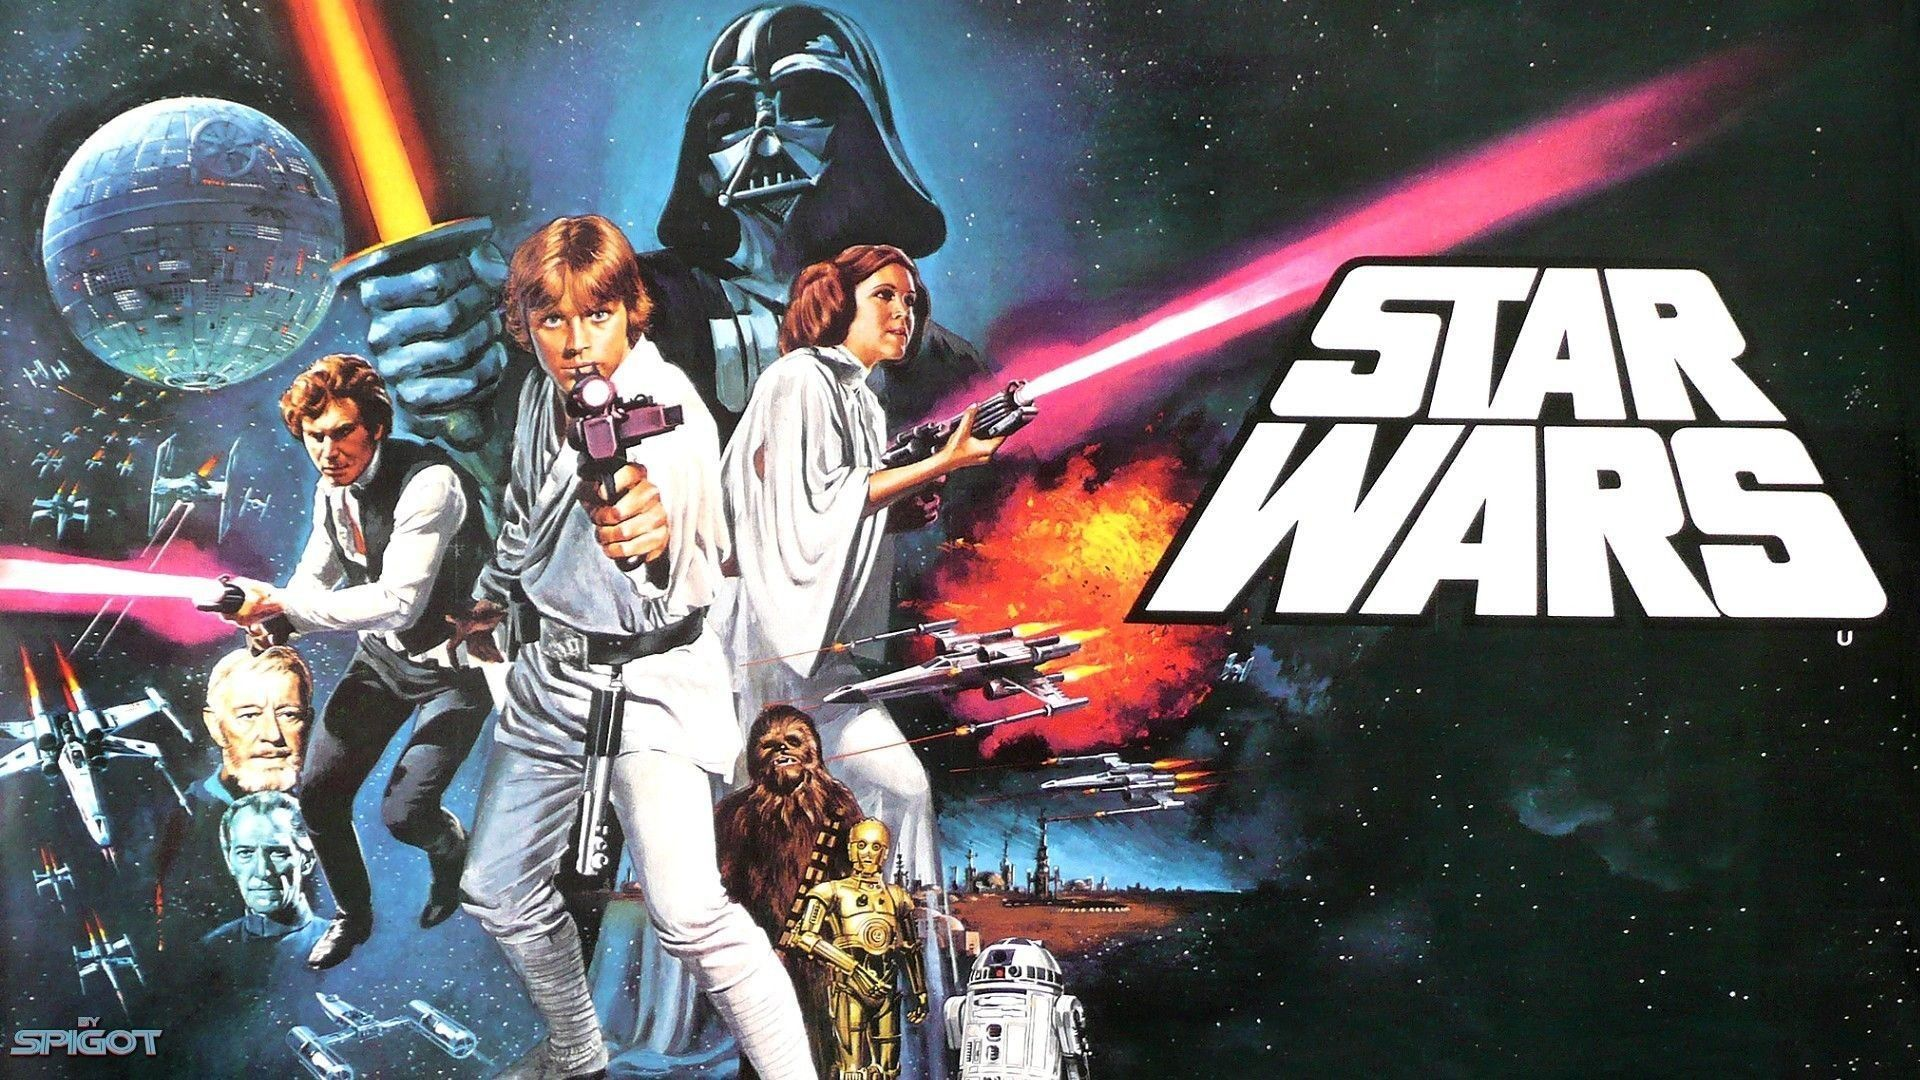 star wars movie poster wallpapers top